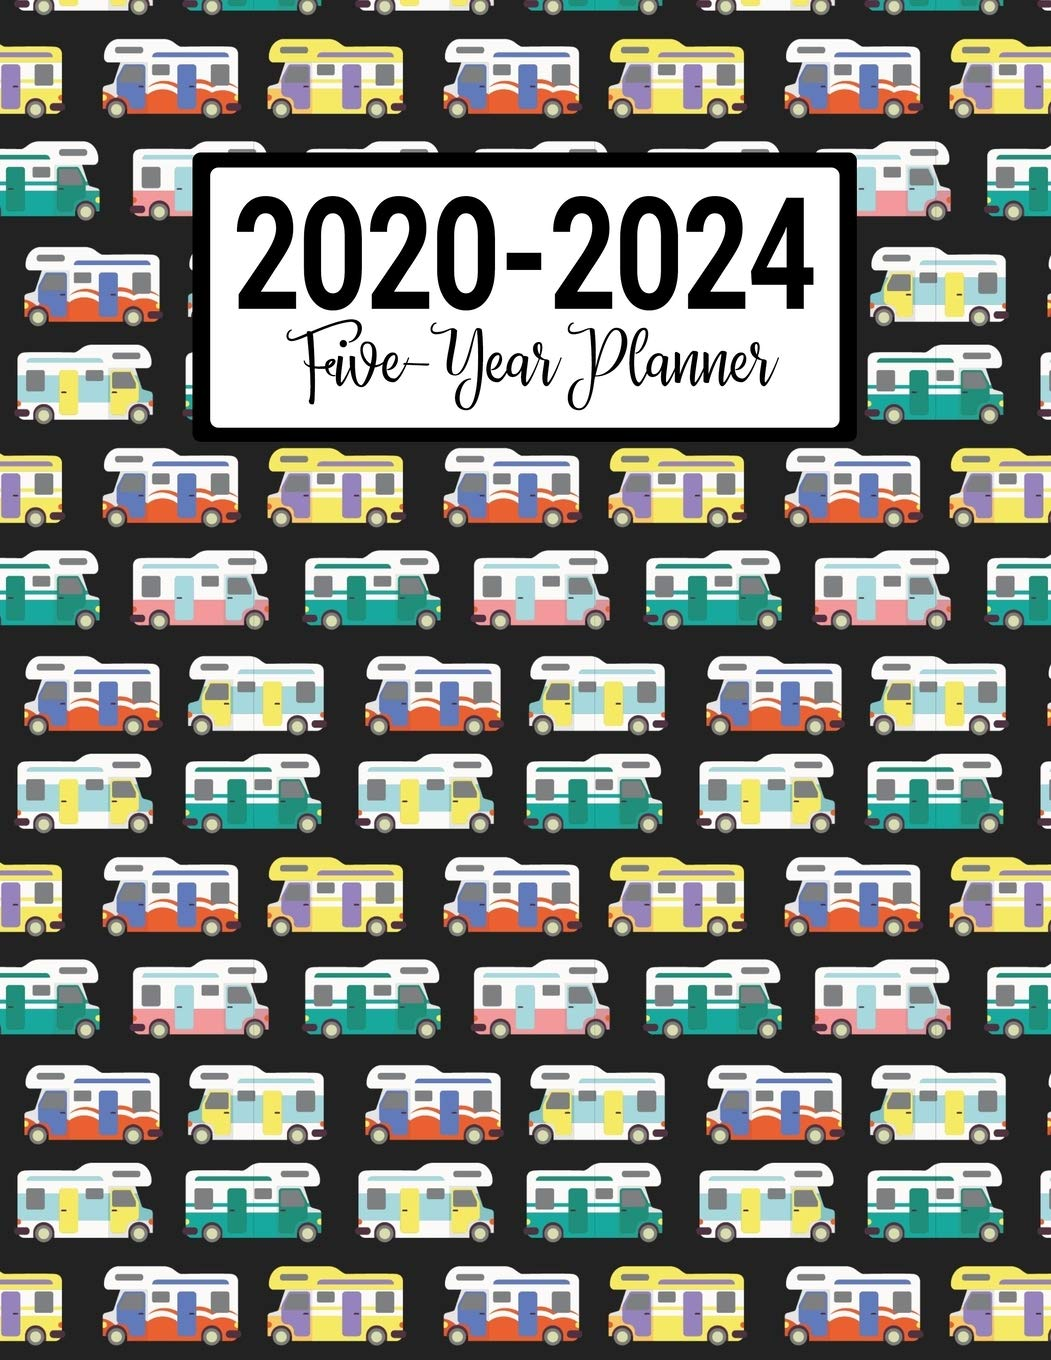 Amazon Com 2020 2024 Five Year Planner Rv Motorhome Pattern 60 Month Calendar 9781701587182 Planners Lizzy Does Books A tiny new baby can mean big changes and major expenses for new parents. amazon com